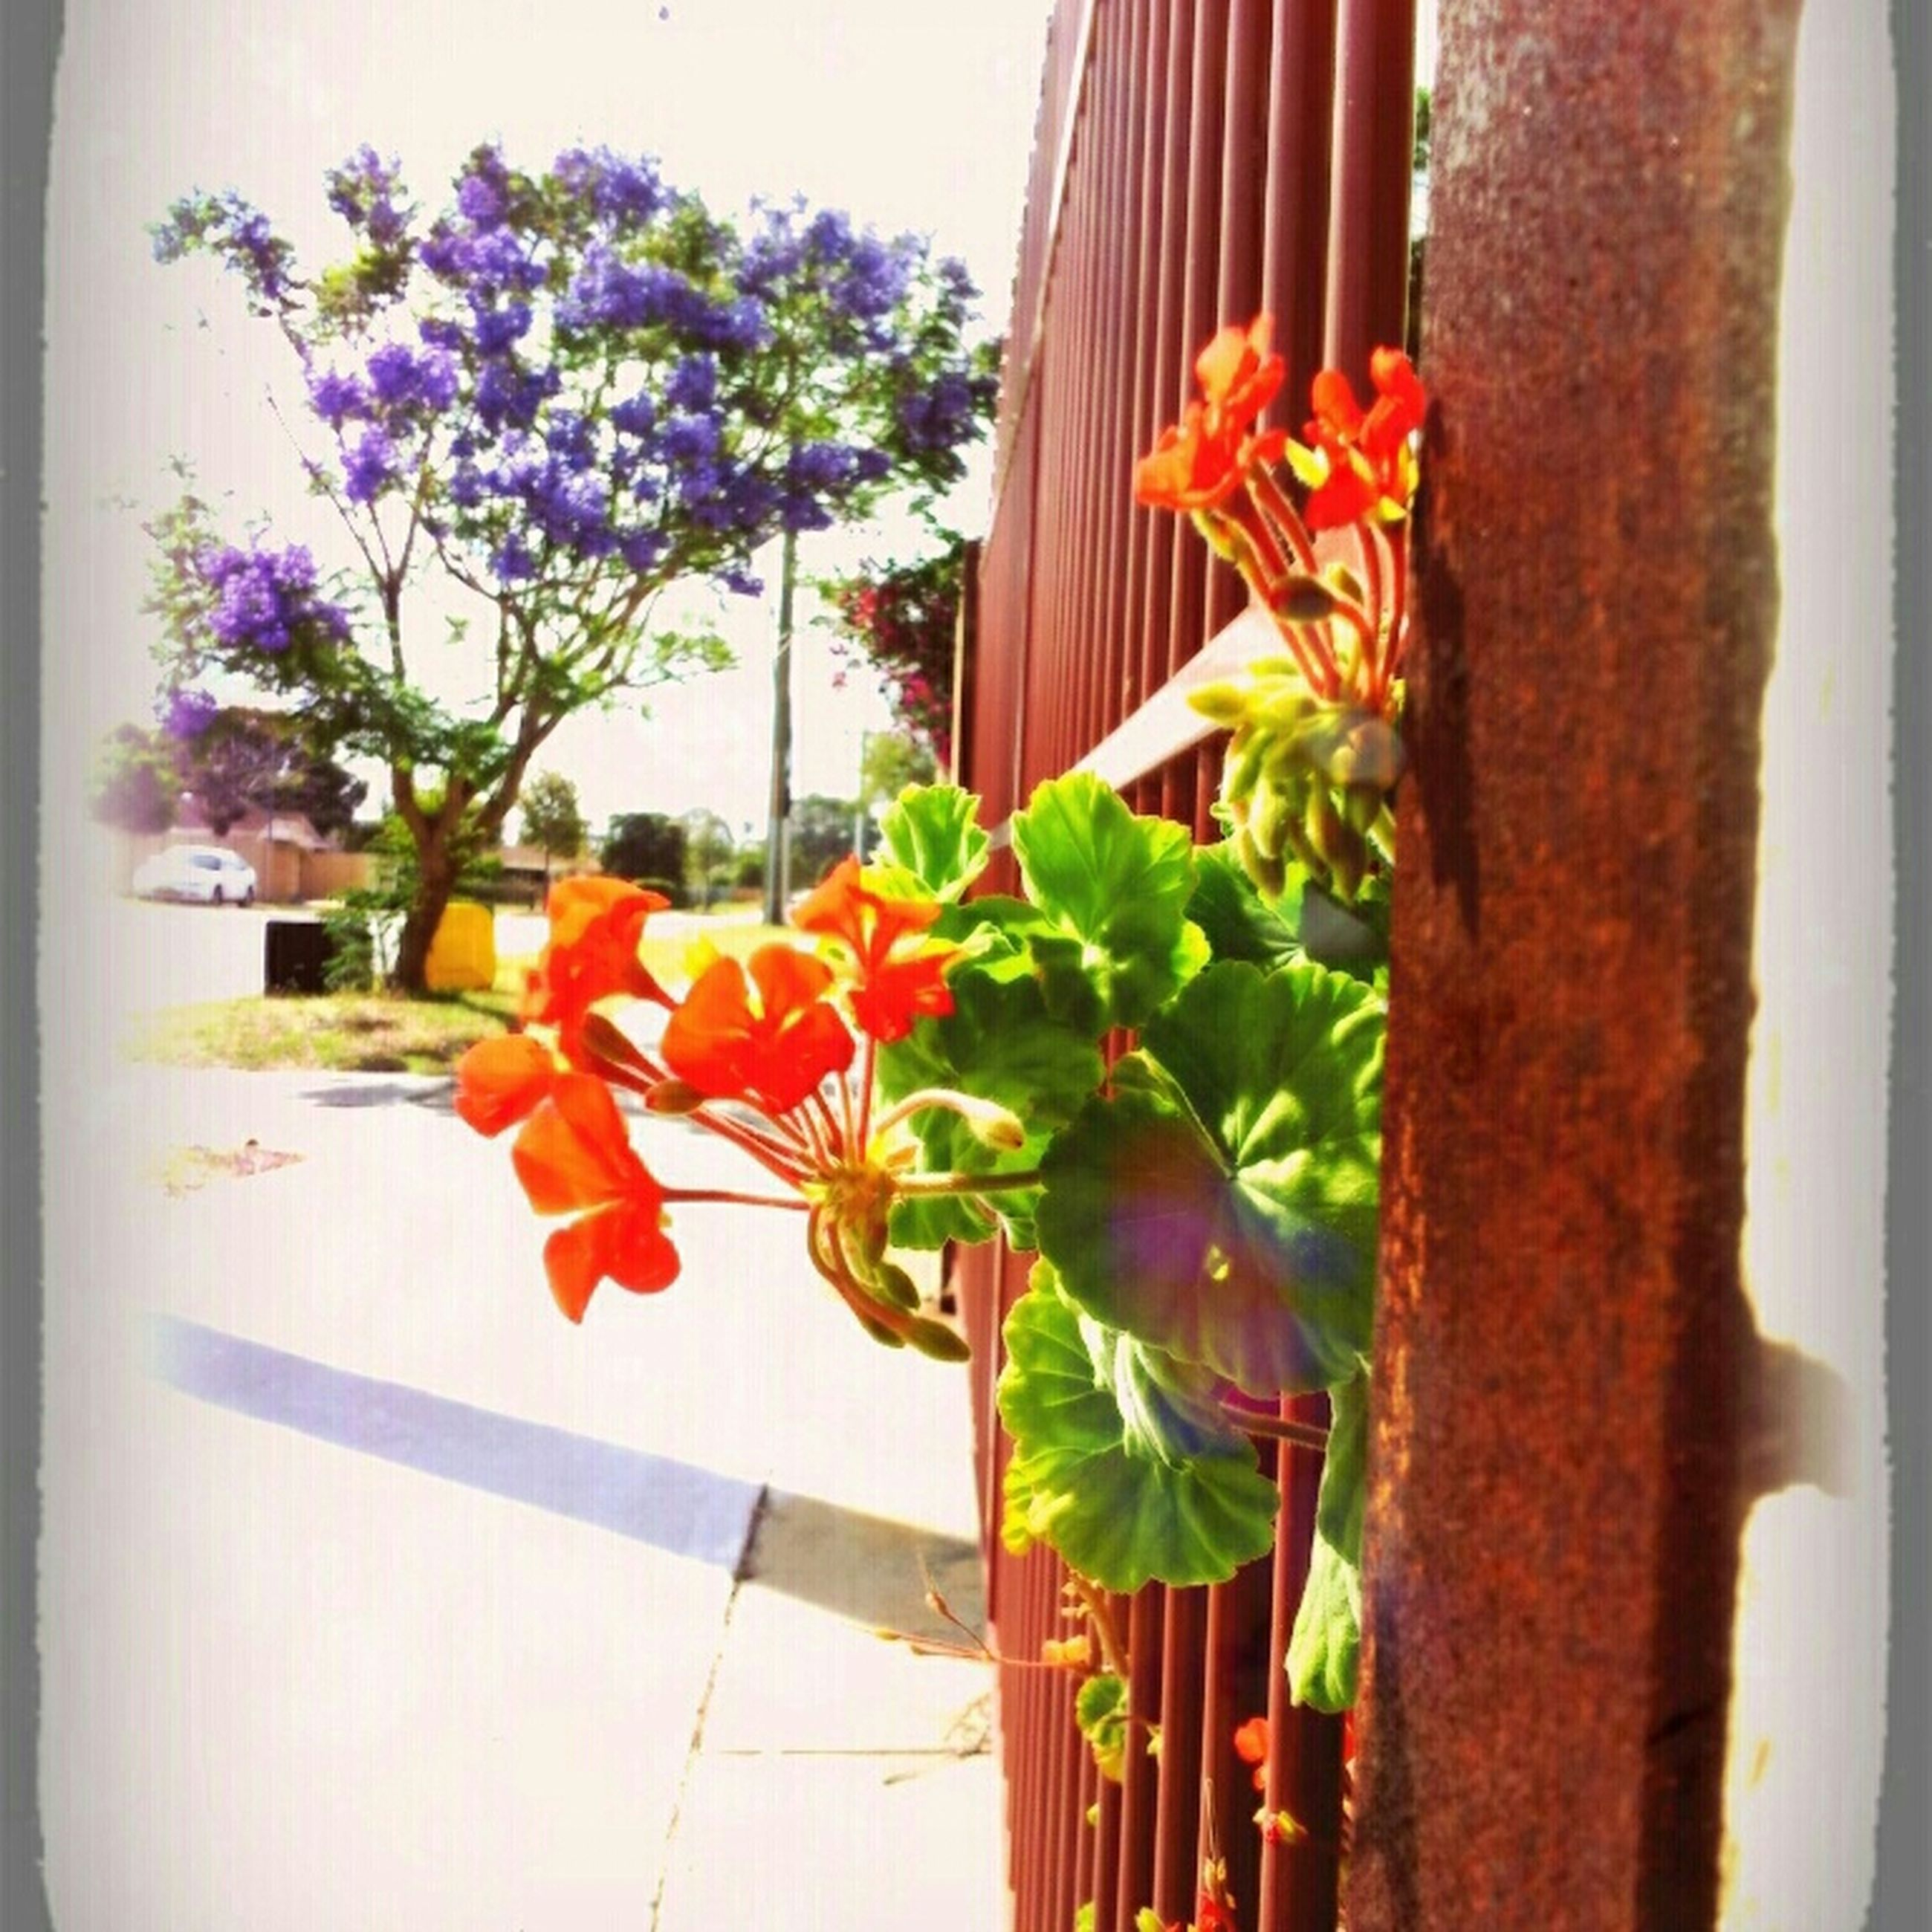 flower, growth, potted plant, freshness, plant, built structure, architecture, fragility, building exterior, petal, red, nature, beauty in nature, railing, flower pot, leaf, wall - building feature, close-up, house, day